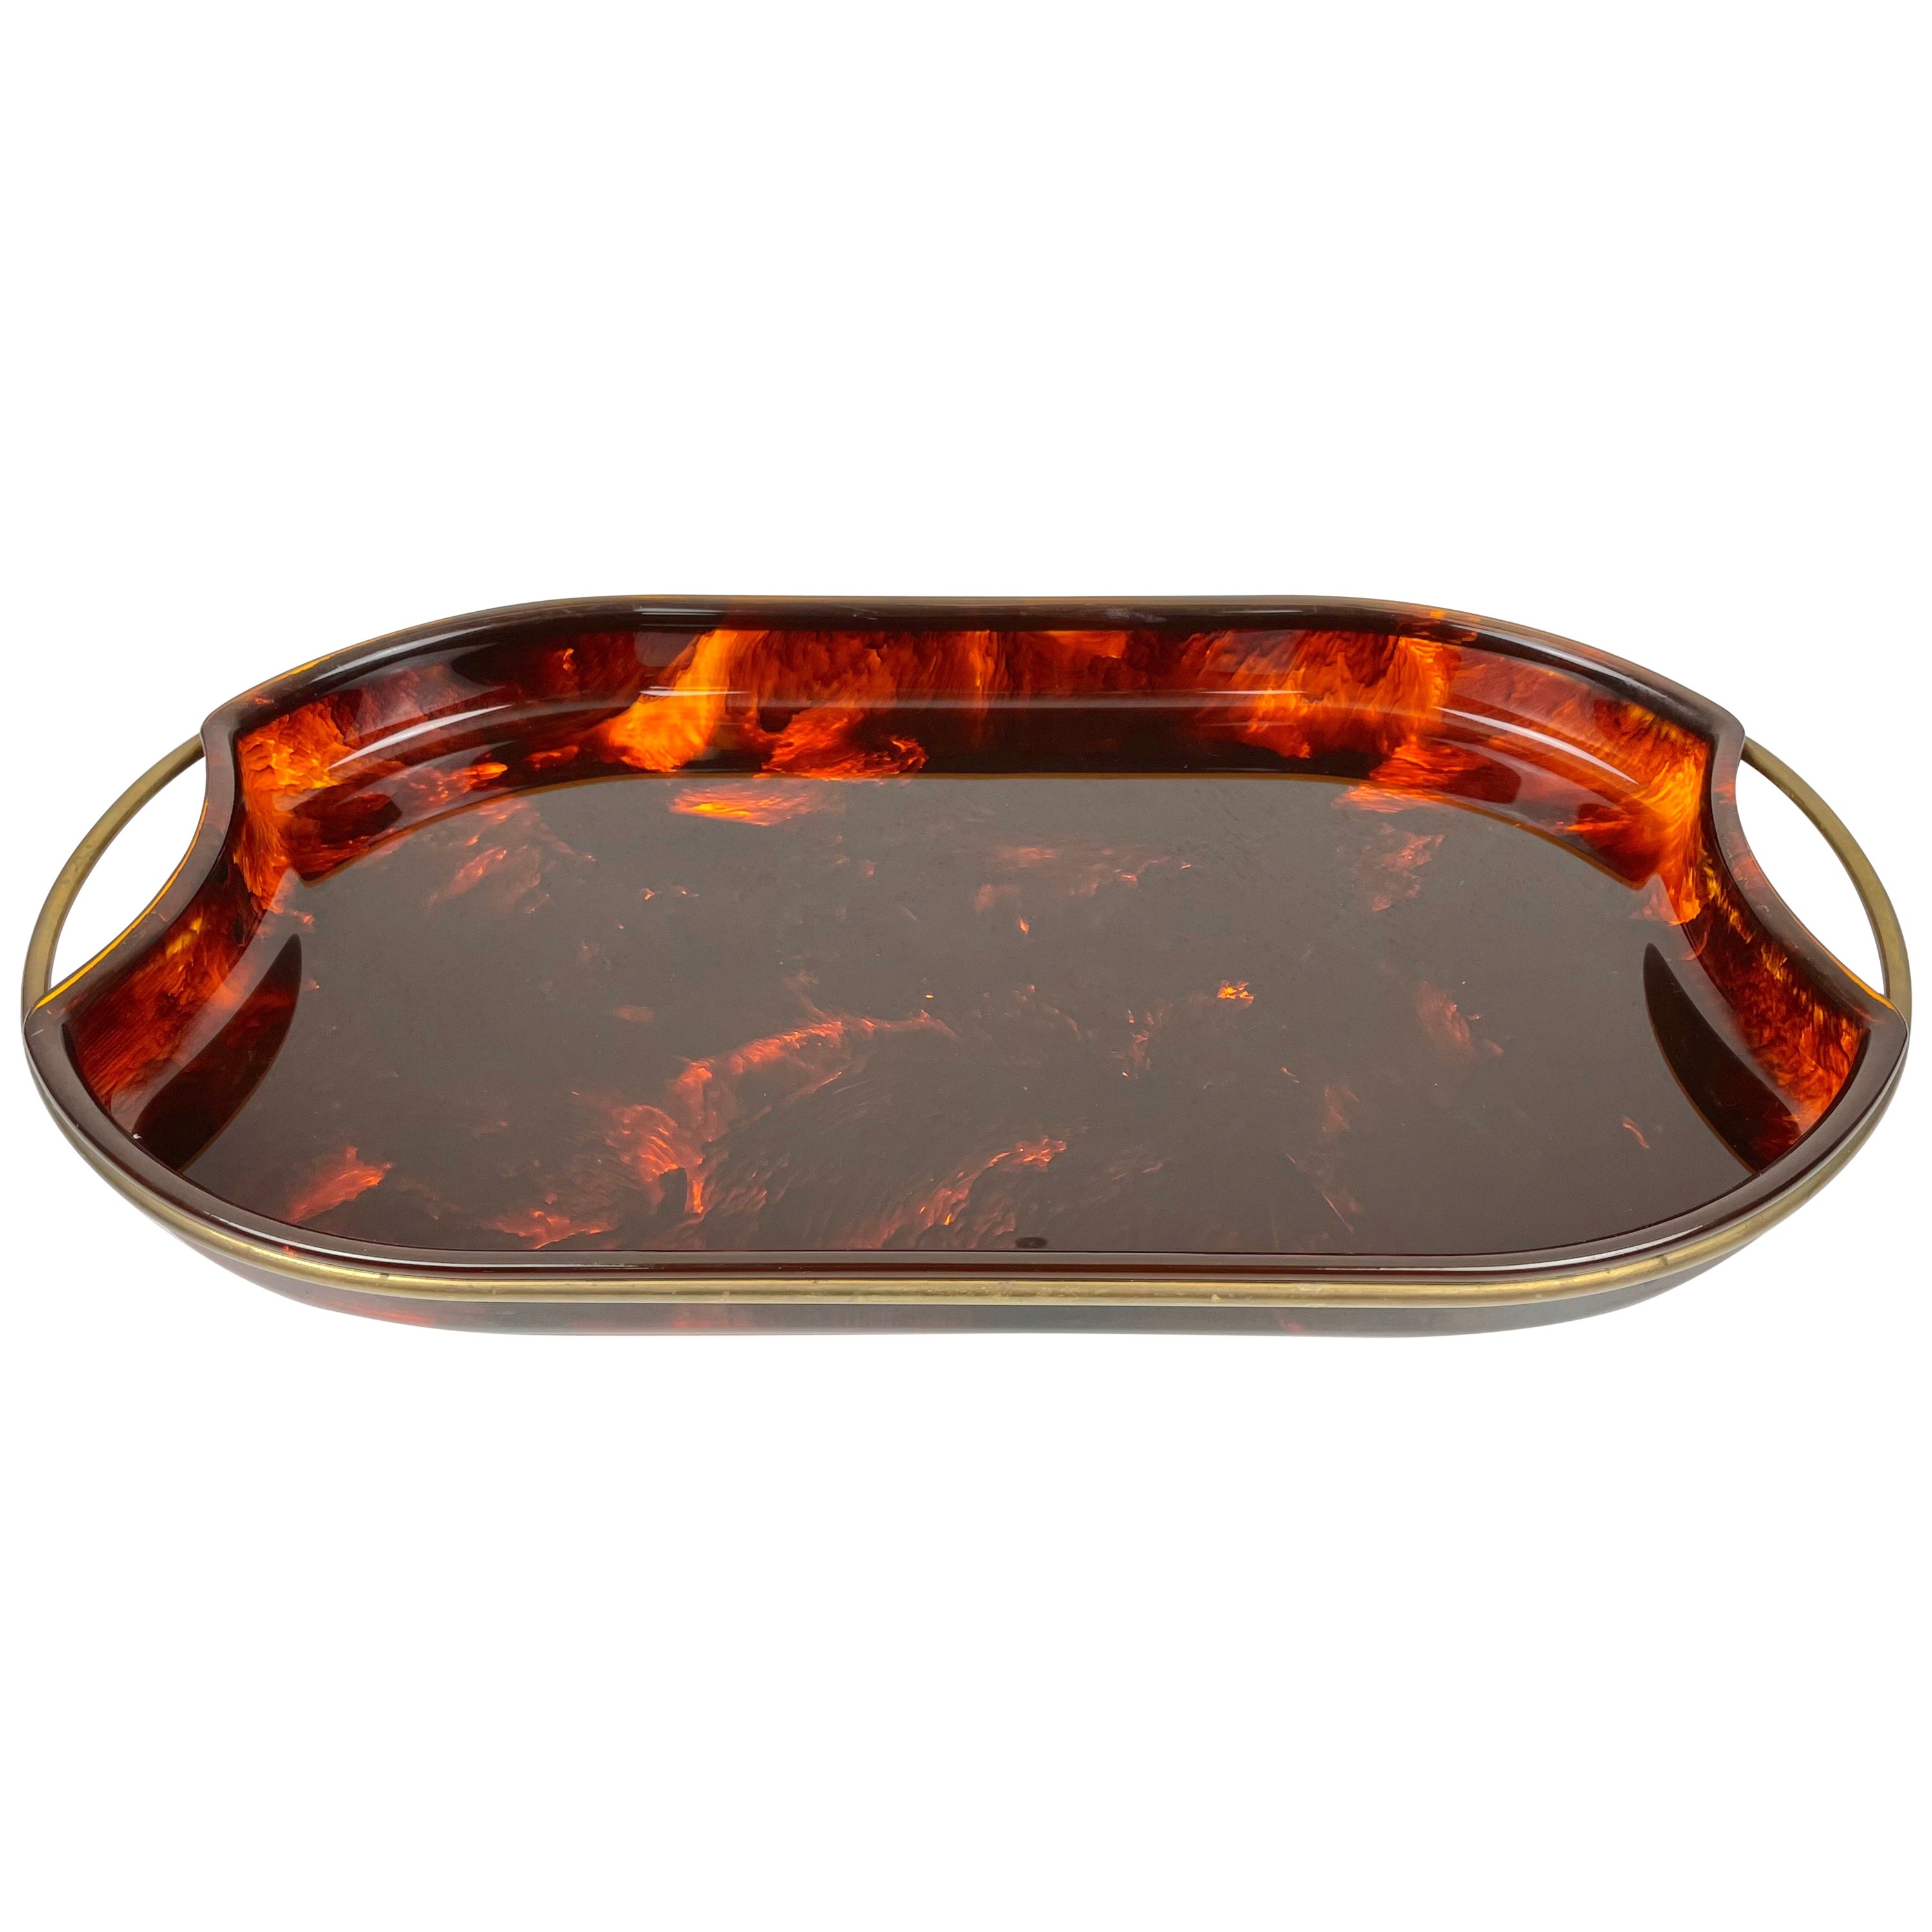 Serving Tray Faux Tortoise Shell Lucite and Brass, Italy, 1970s